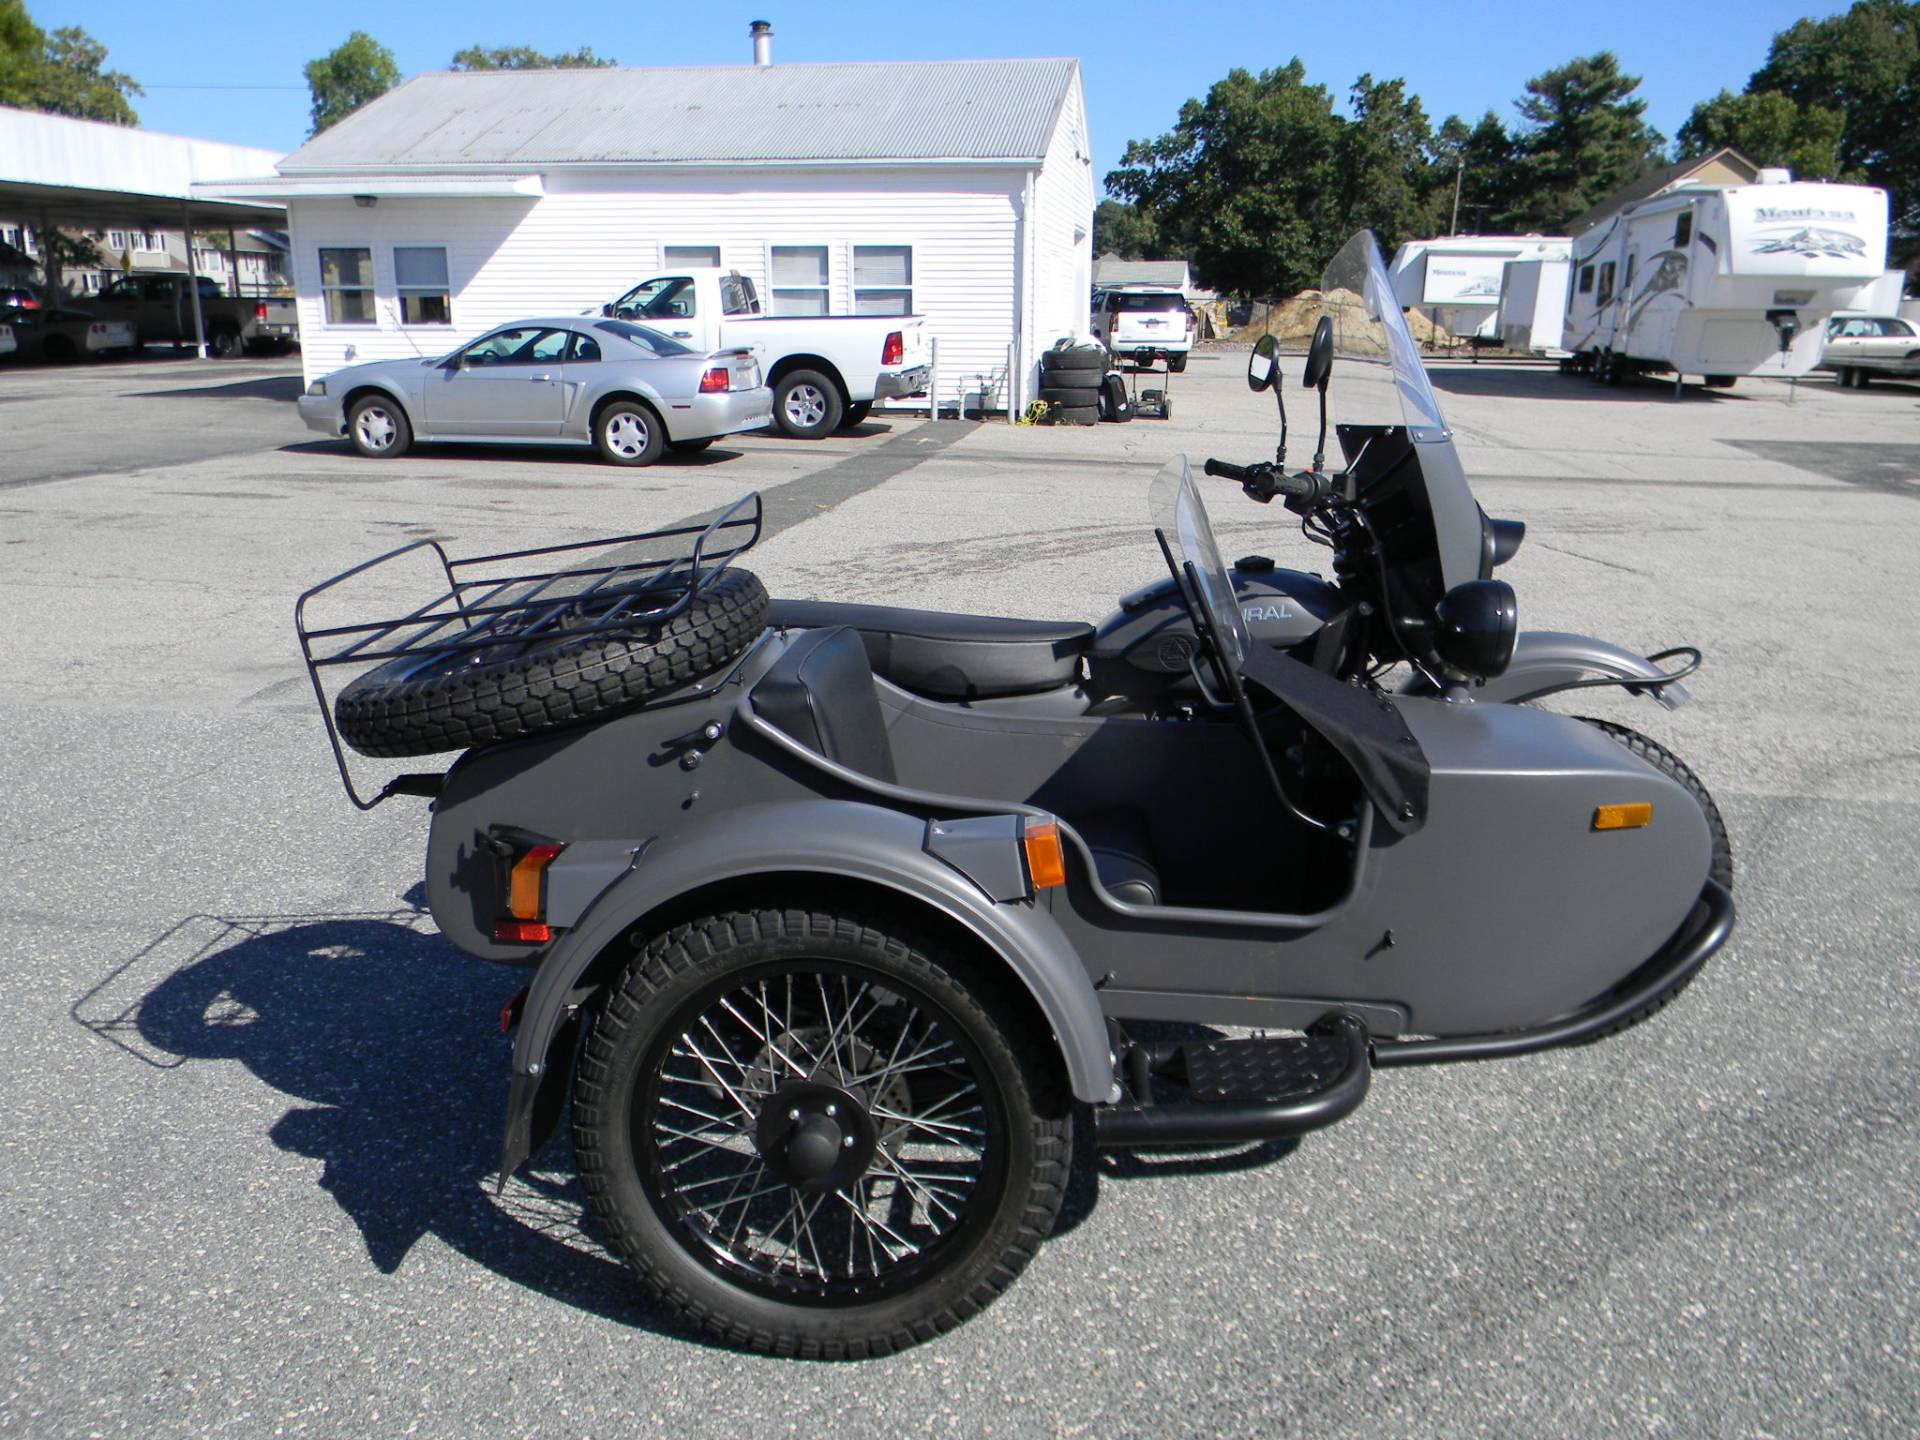 2014 Ural Motorcycles Gear-Up in Springfield, Massachusetts - Photo 1